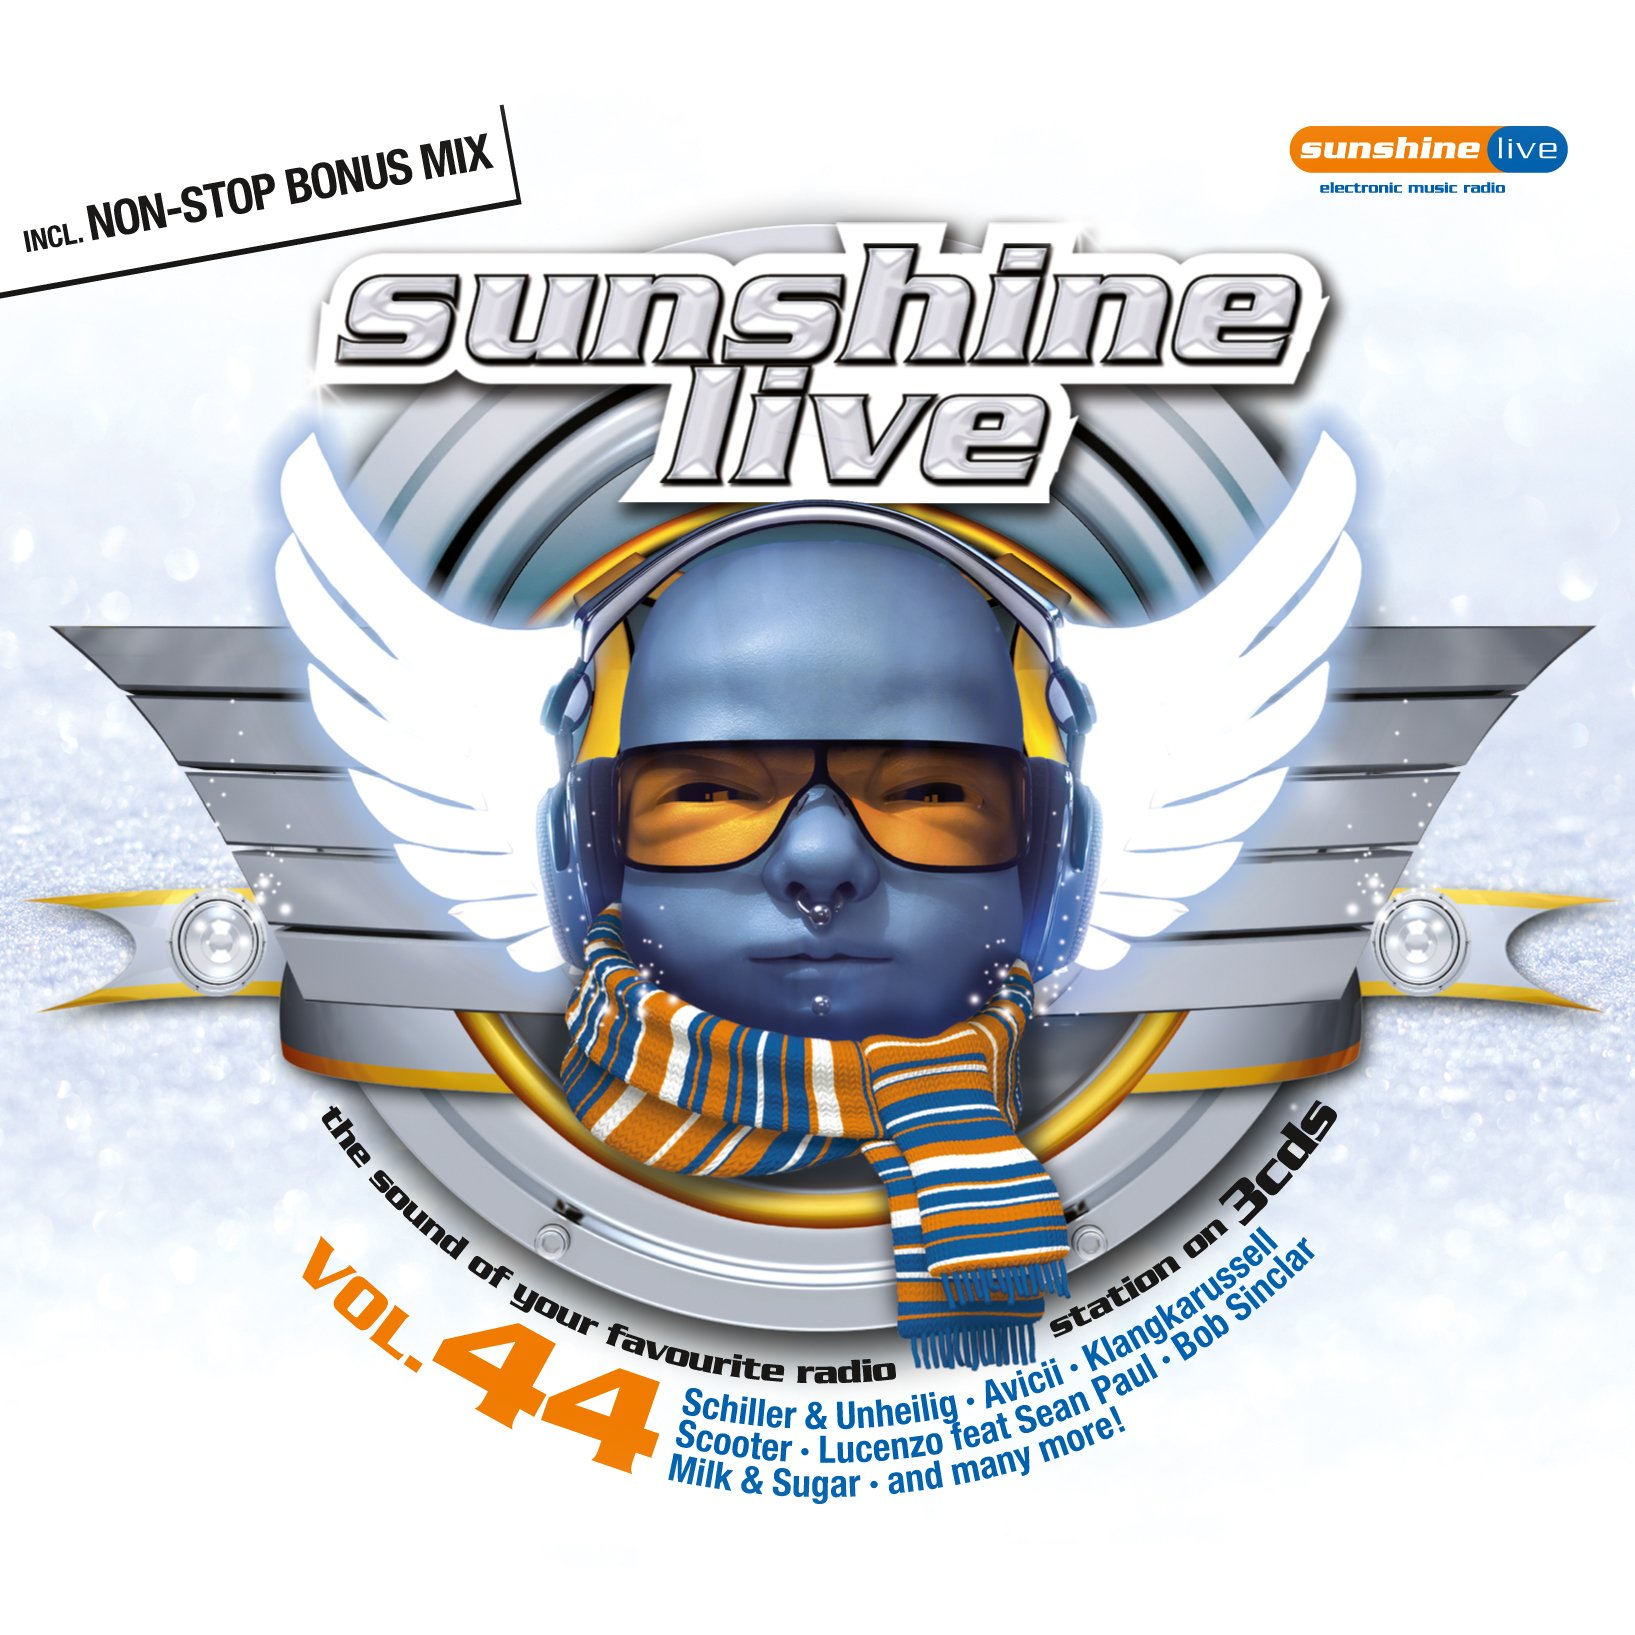 Sunshine Live Vol. 44 by Zyx/Toptra (Zyx Music)